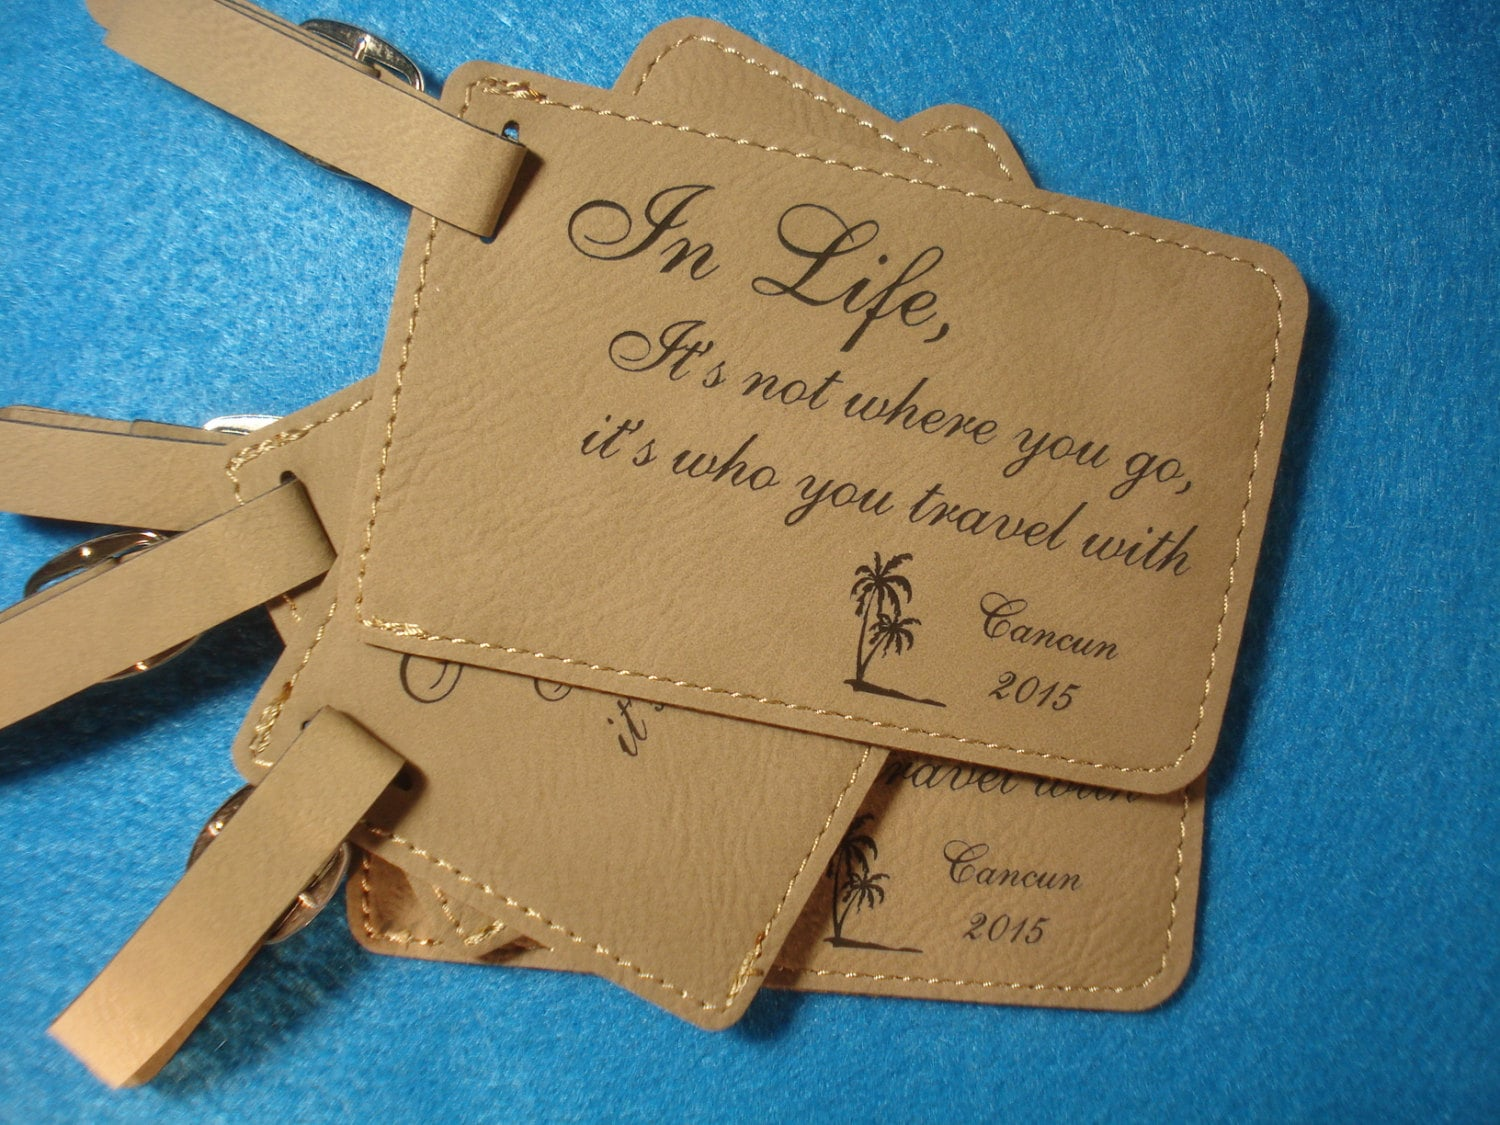 Personalized Luggage Tags Wedding Gift: Leather Luggage Tags 100 Custom WEDDING FAVORS Leatherette